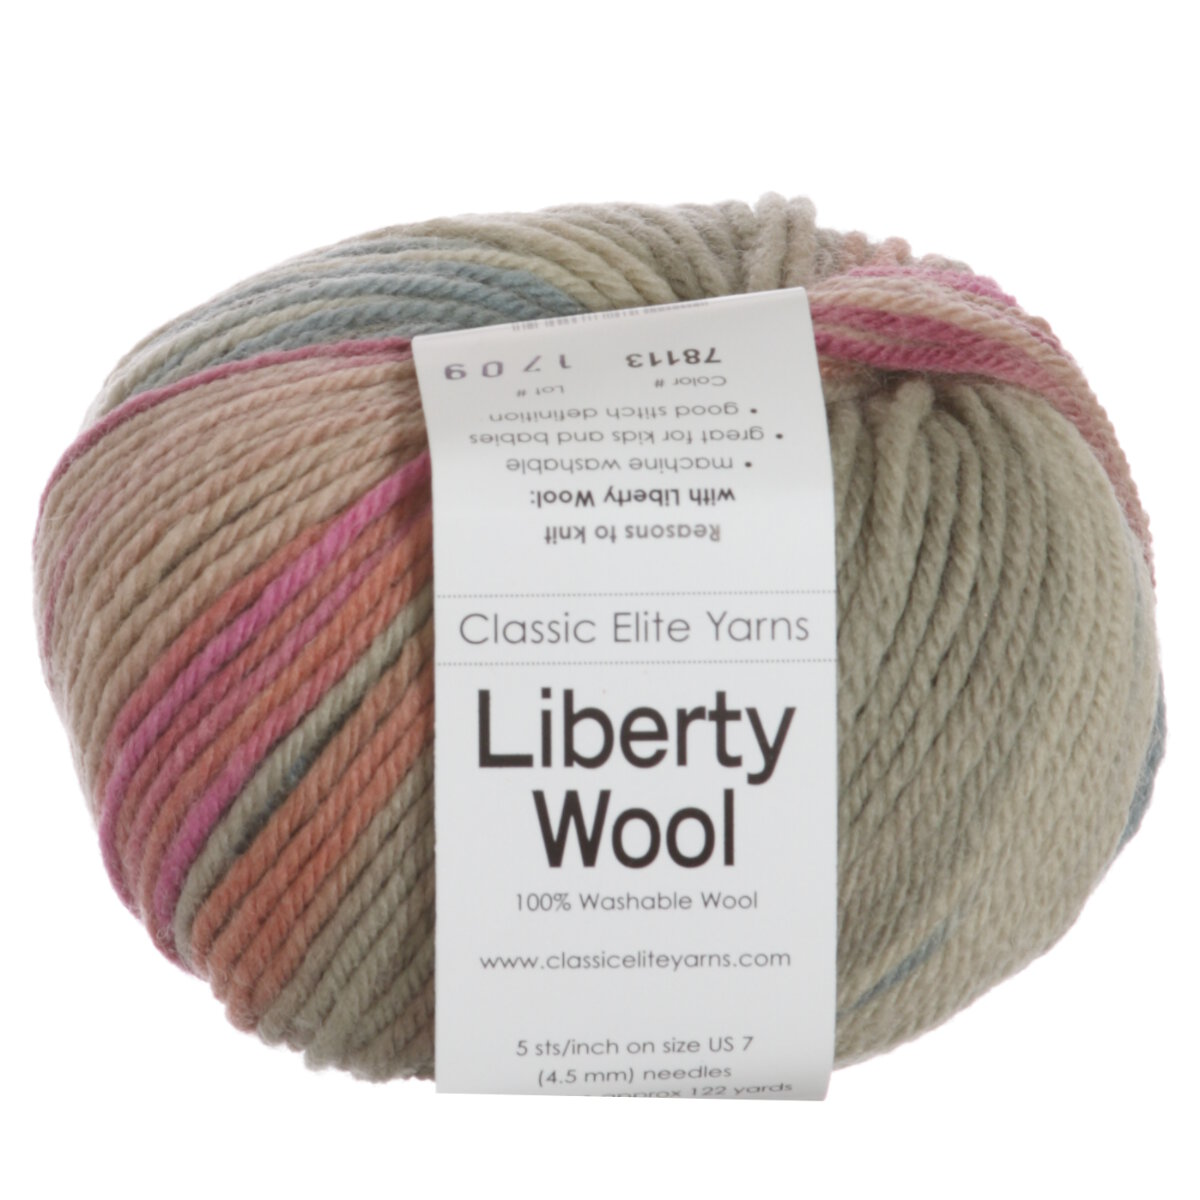 Classic Elite Liberty Wool Print Yarn - 78113 Pink Shadow at Jimmy Beans Wool